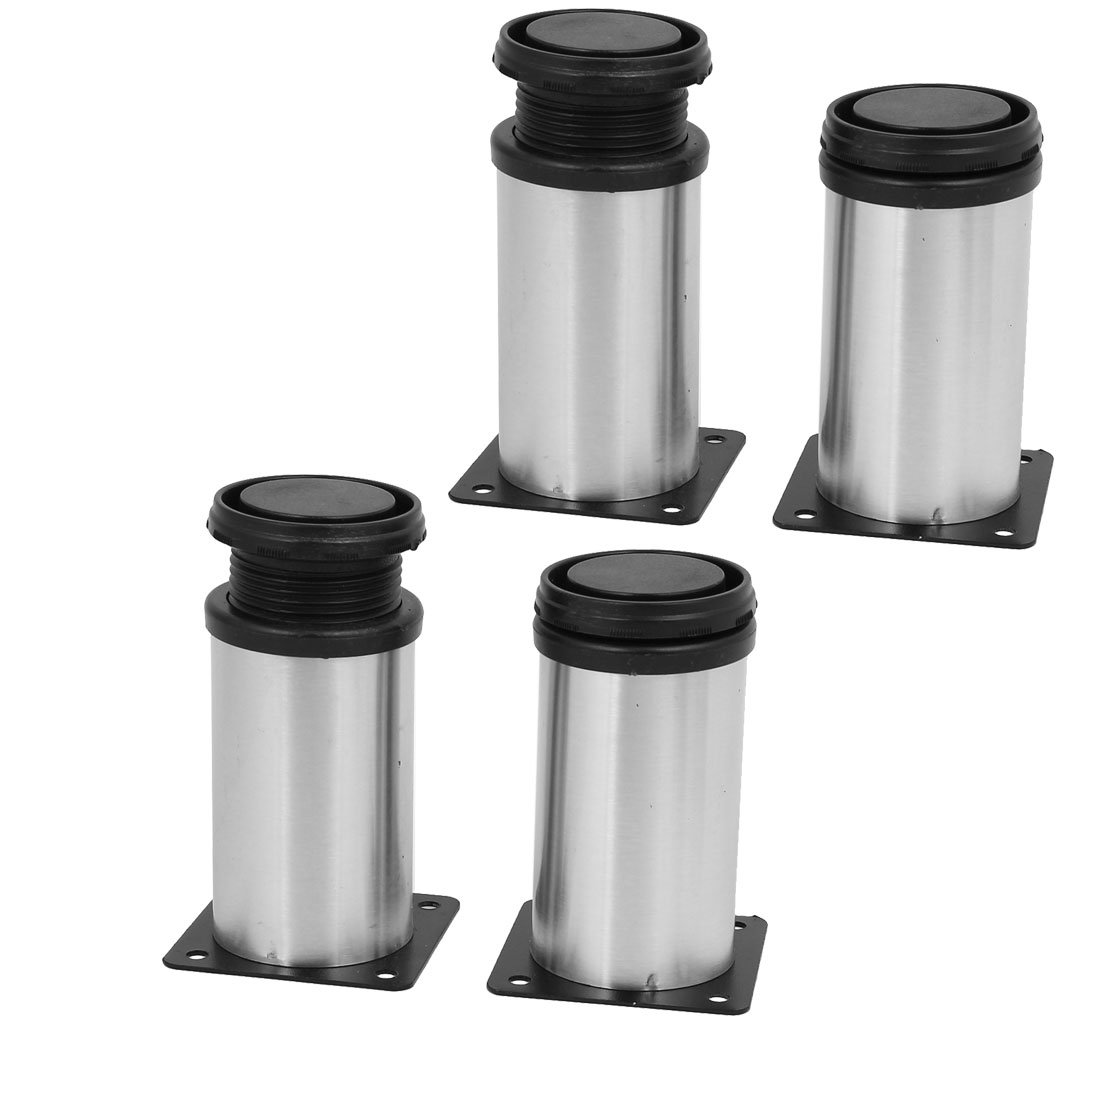 uxcell 50mm x 100mm Metal Adjustable Furniture Cabinet Feet Leg Round Stand 4PCS